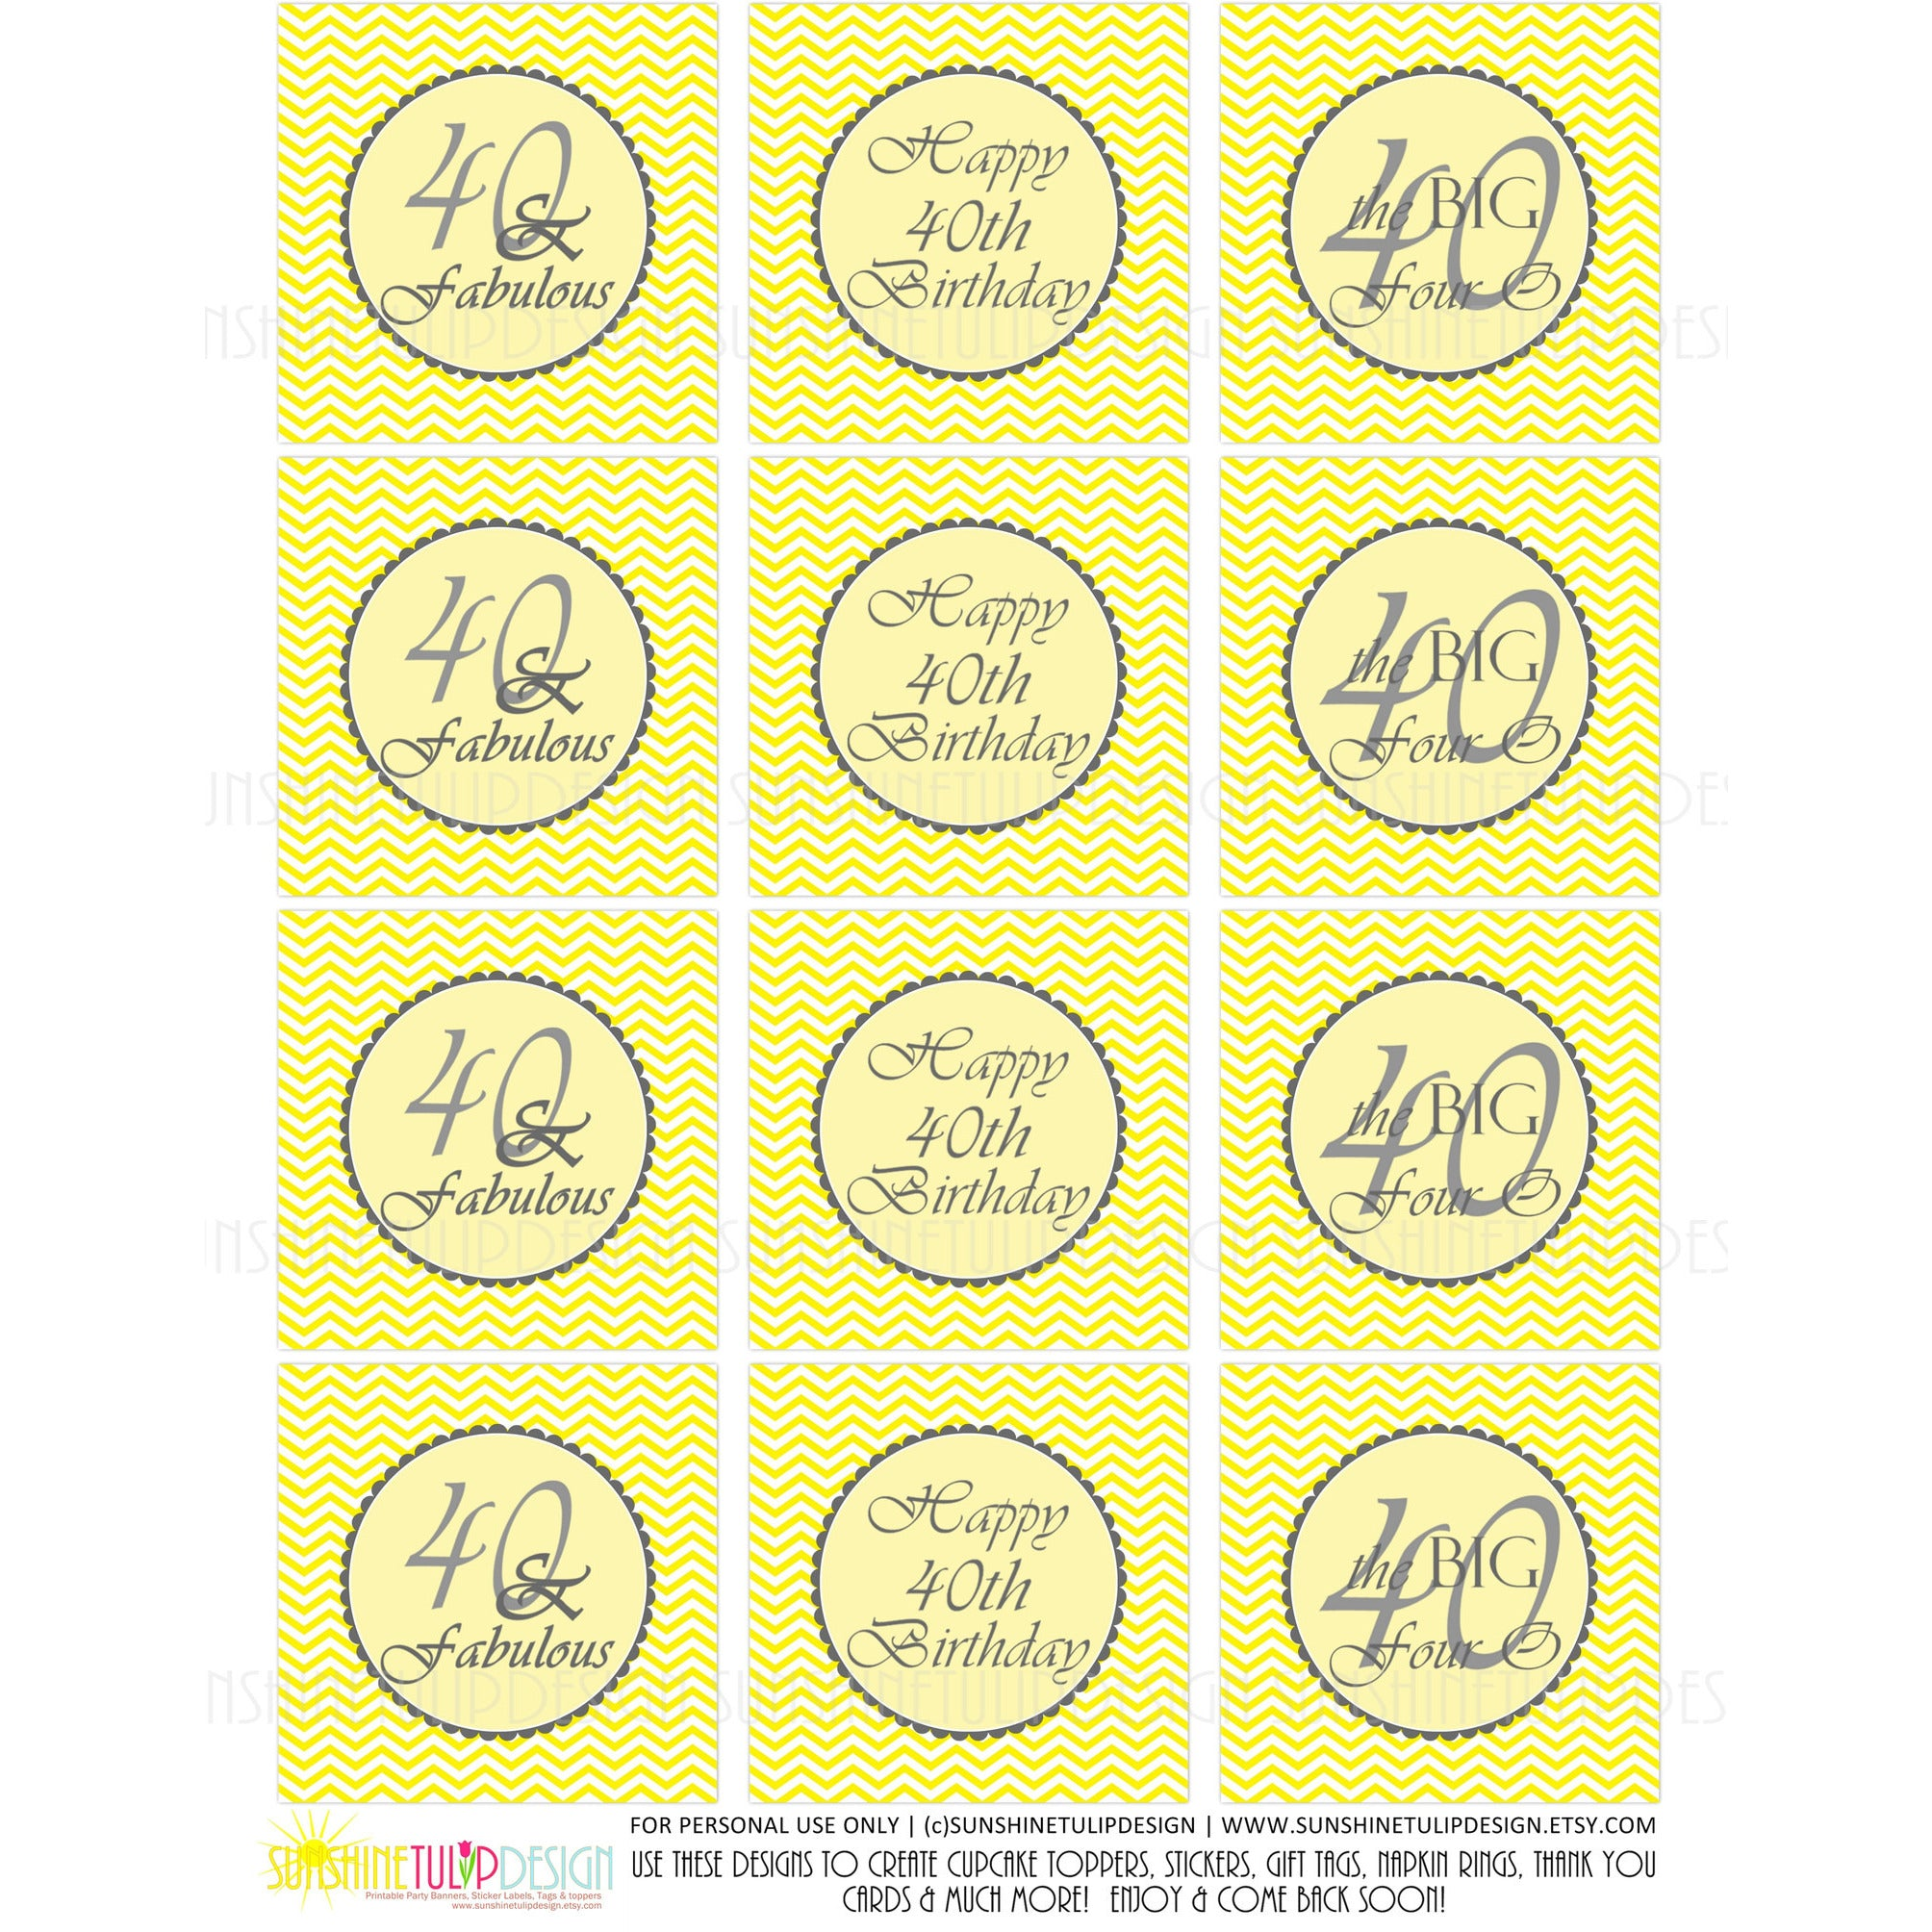 graphic regarding Printable Stickers Labels titled Printable 40 and Amazing Yellow Grey Birthday Cupcake Toppers, Sticker Labels Bash Prefer Tags